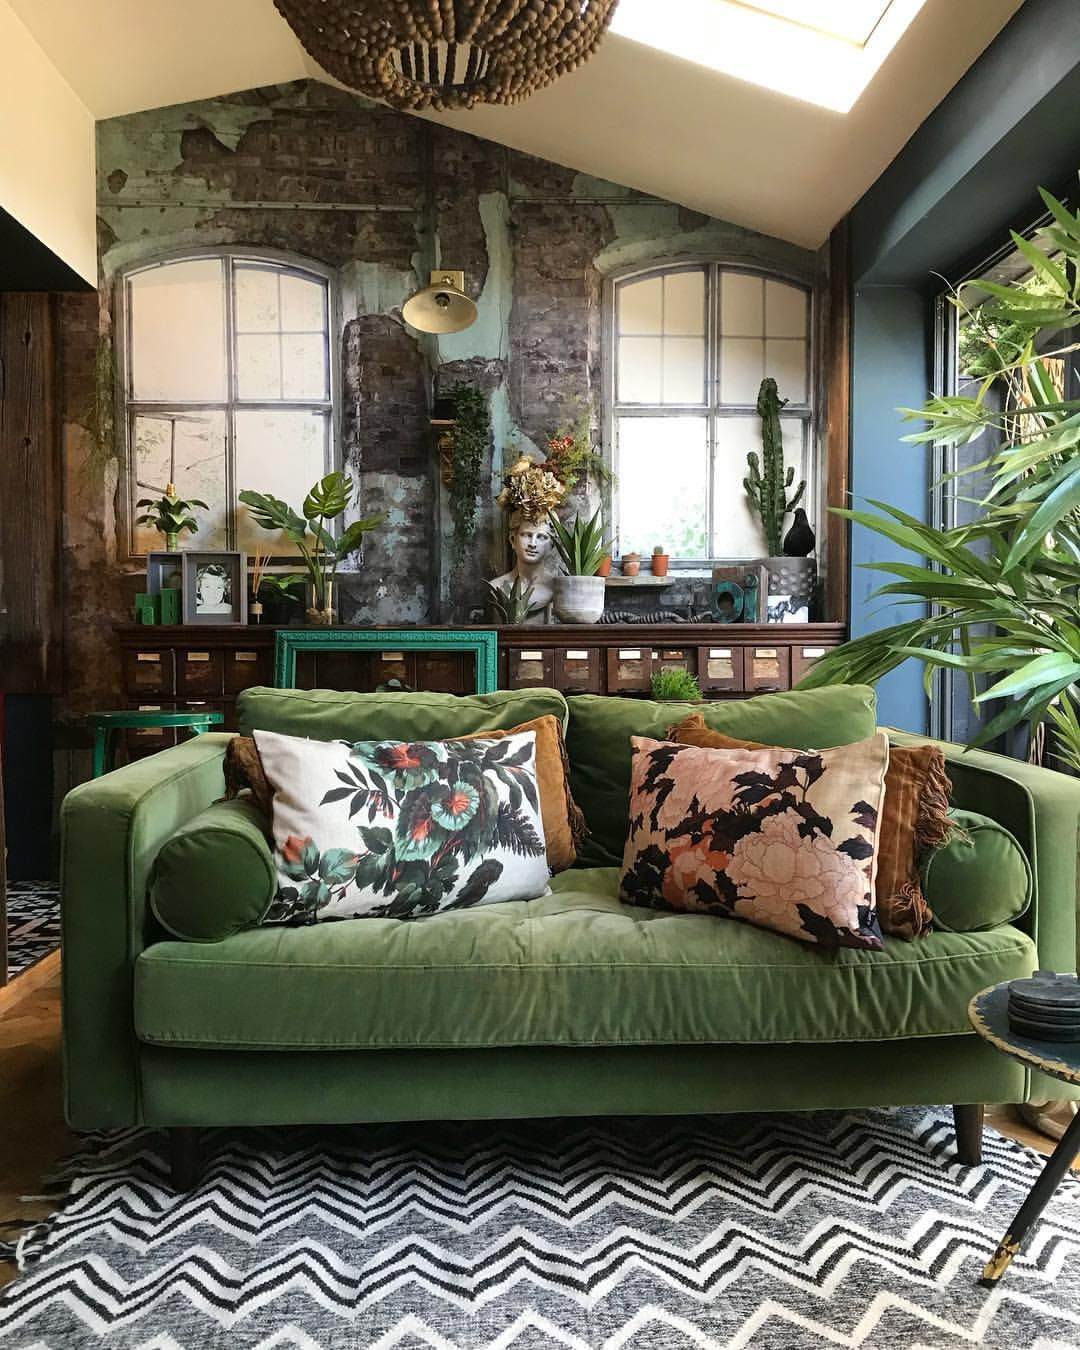 THIS Yummy Green Couch // IG @hilaryandflo  Interior decorating